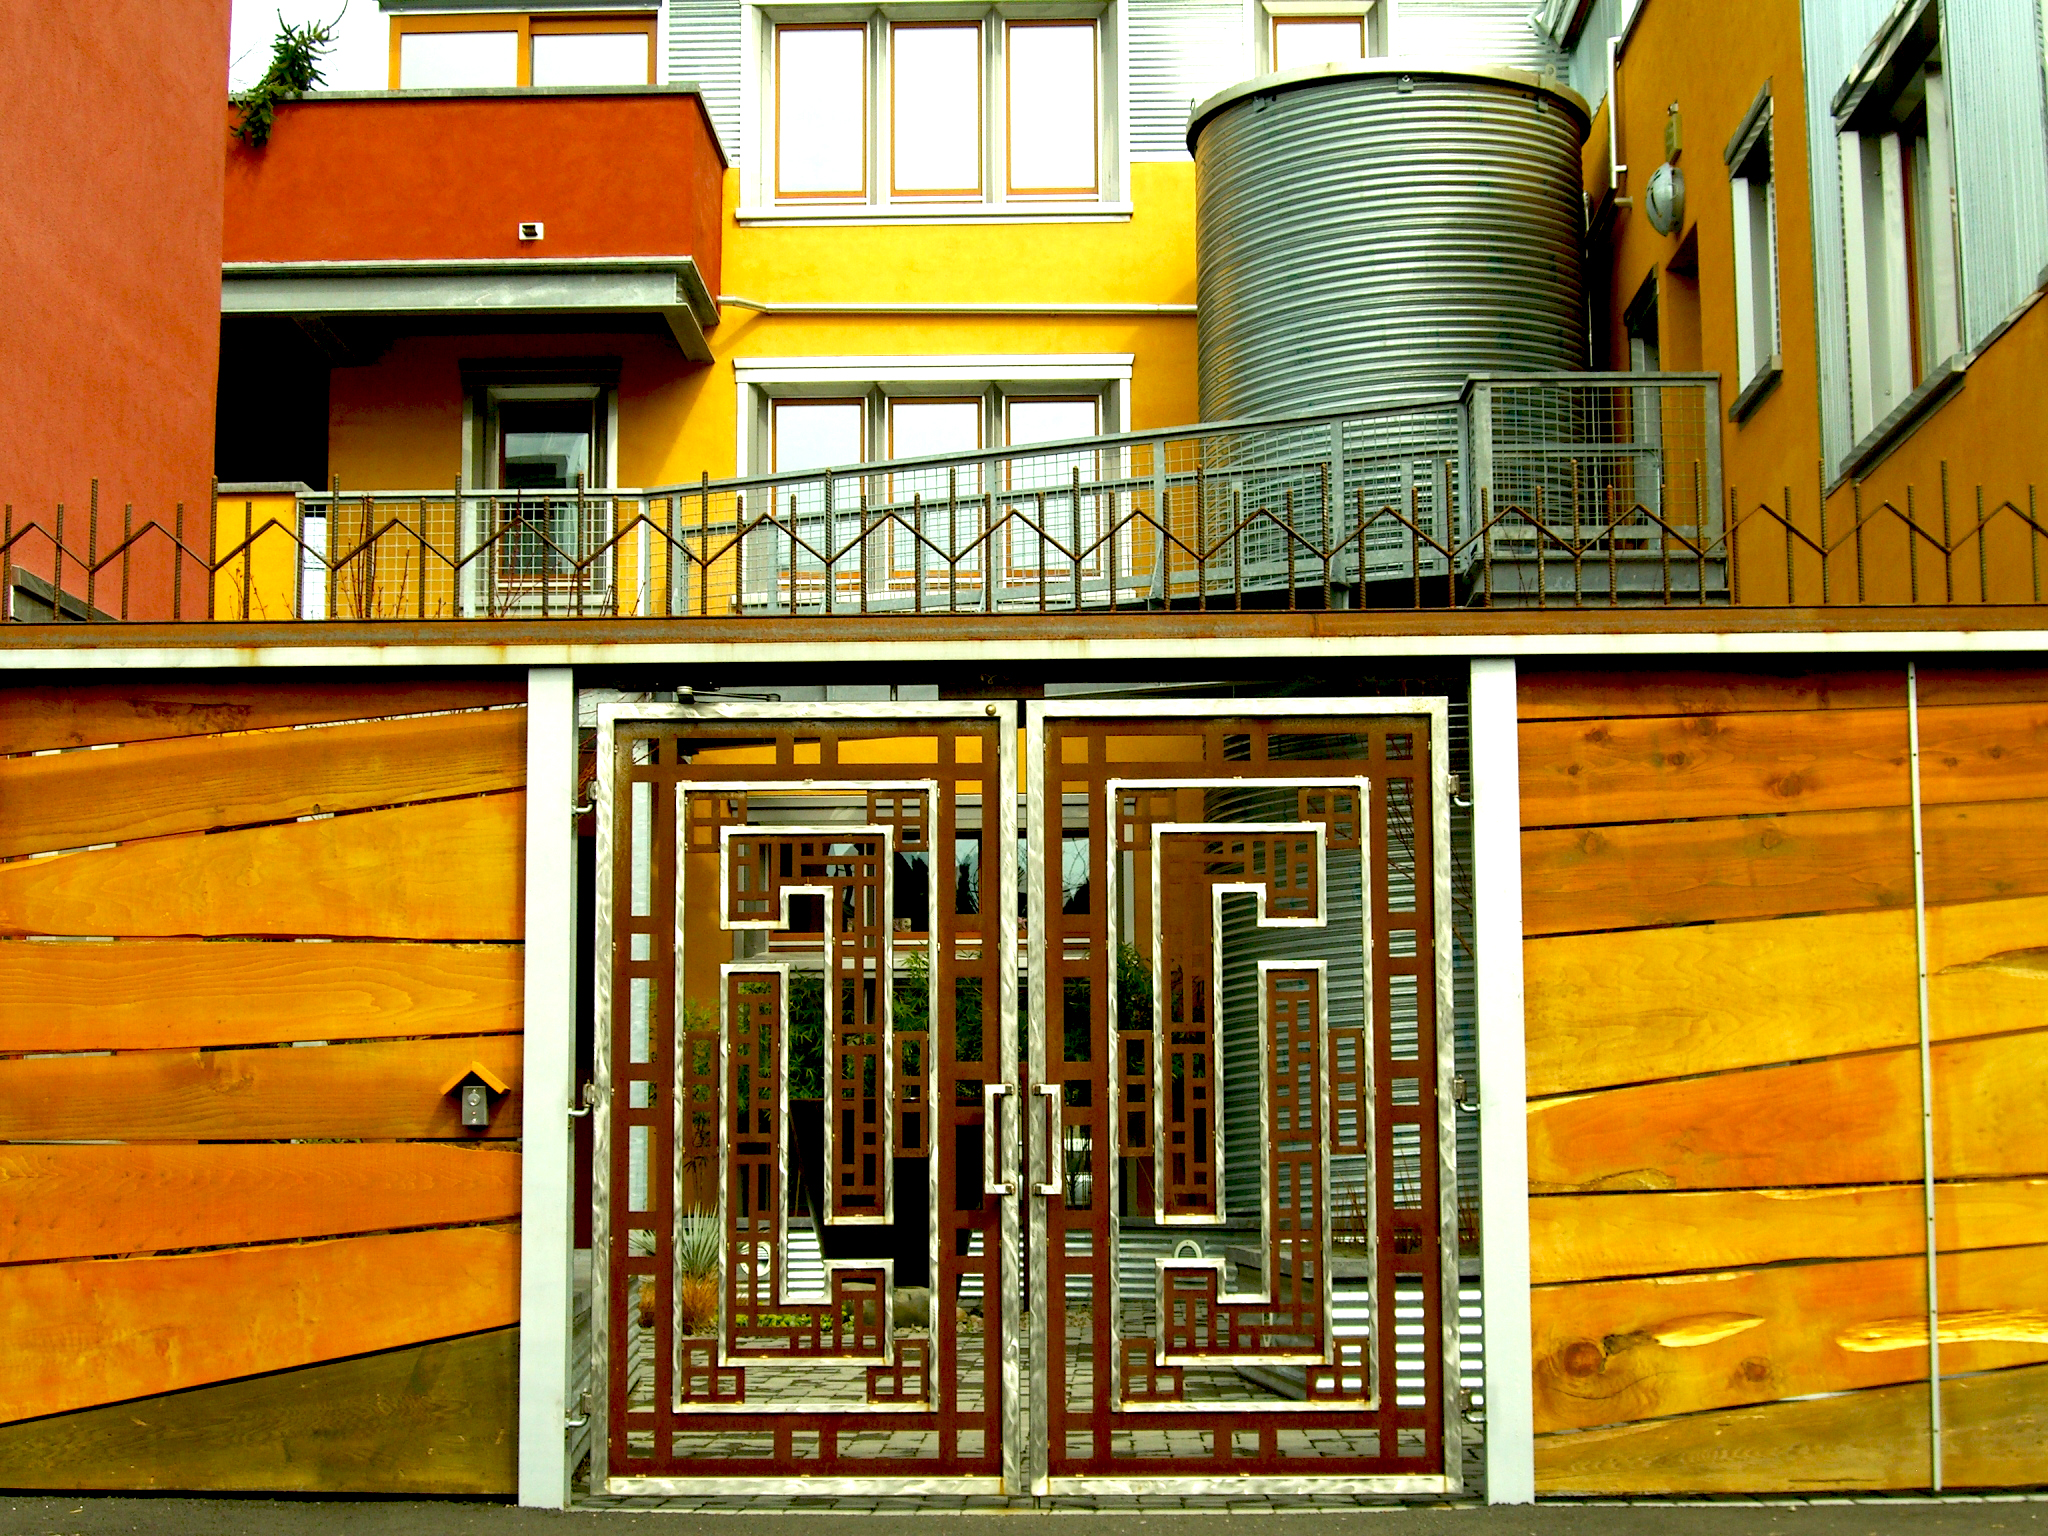 Watershed-Building-geometric-design-custom-fabricated-gate